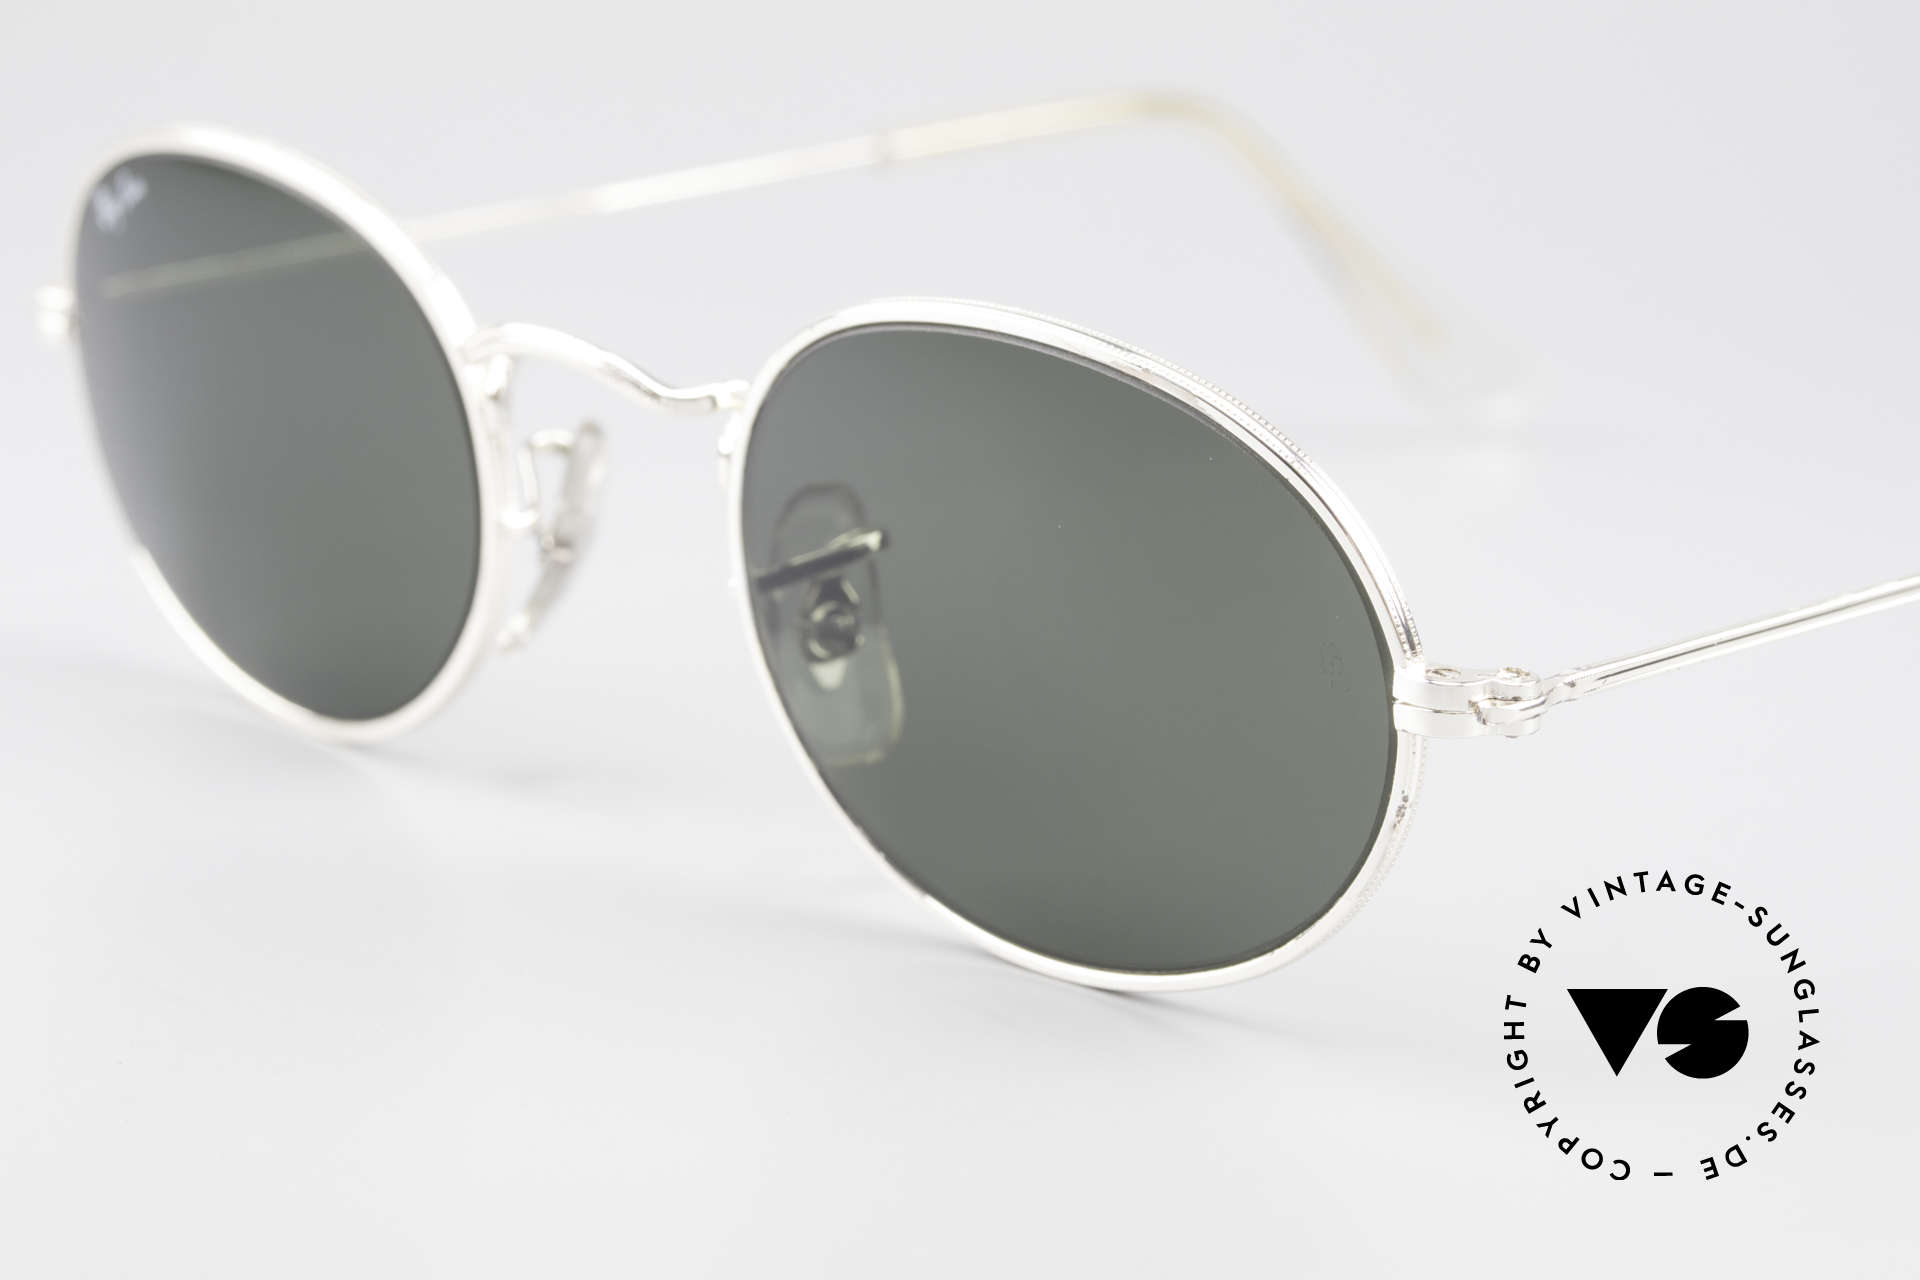 Ray Ban Classic Style I Old Oval B&L USA Sunglasses, unworn (like all our vintage RAY-BAN eyewear), Made for Men and Women